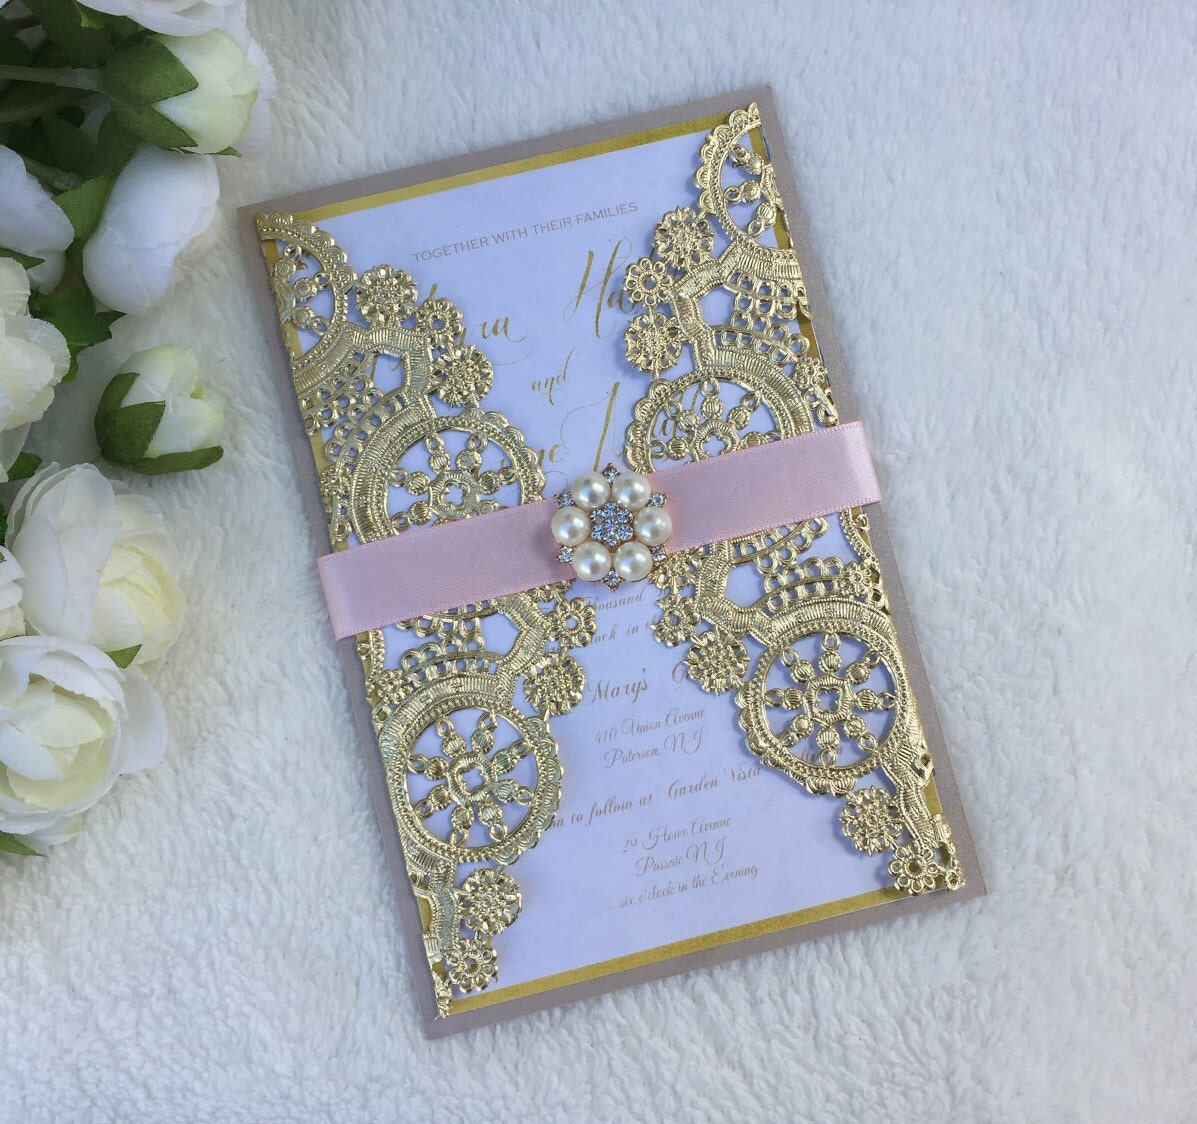 Metallic doily wedding invitation pink and gold doily wedding